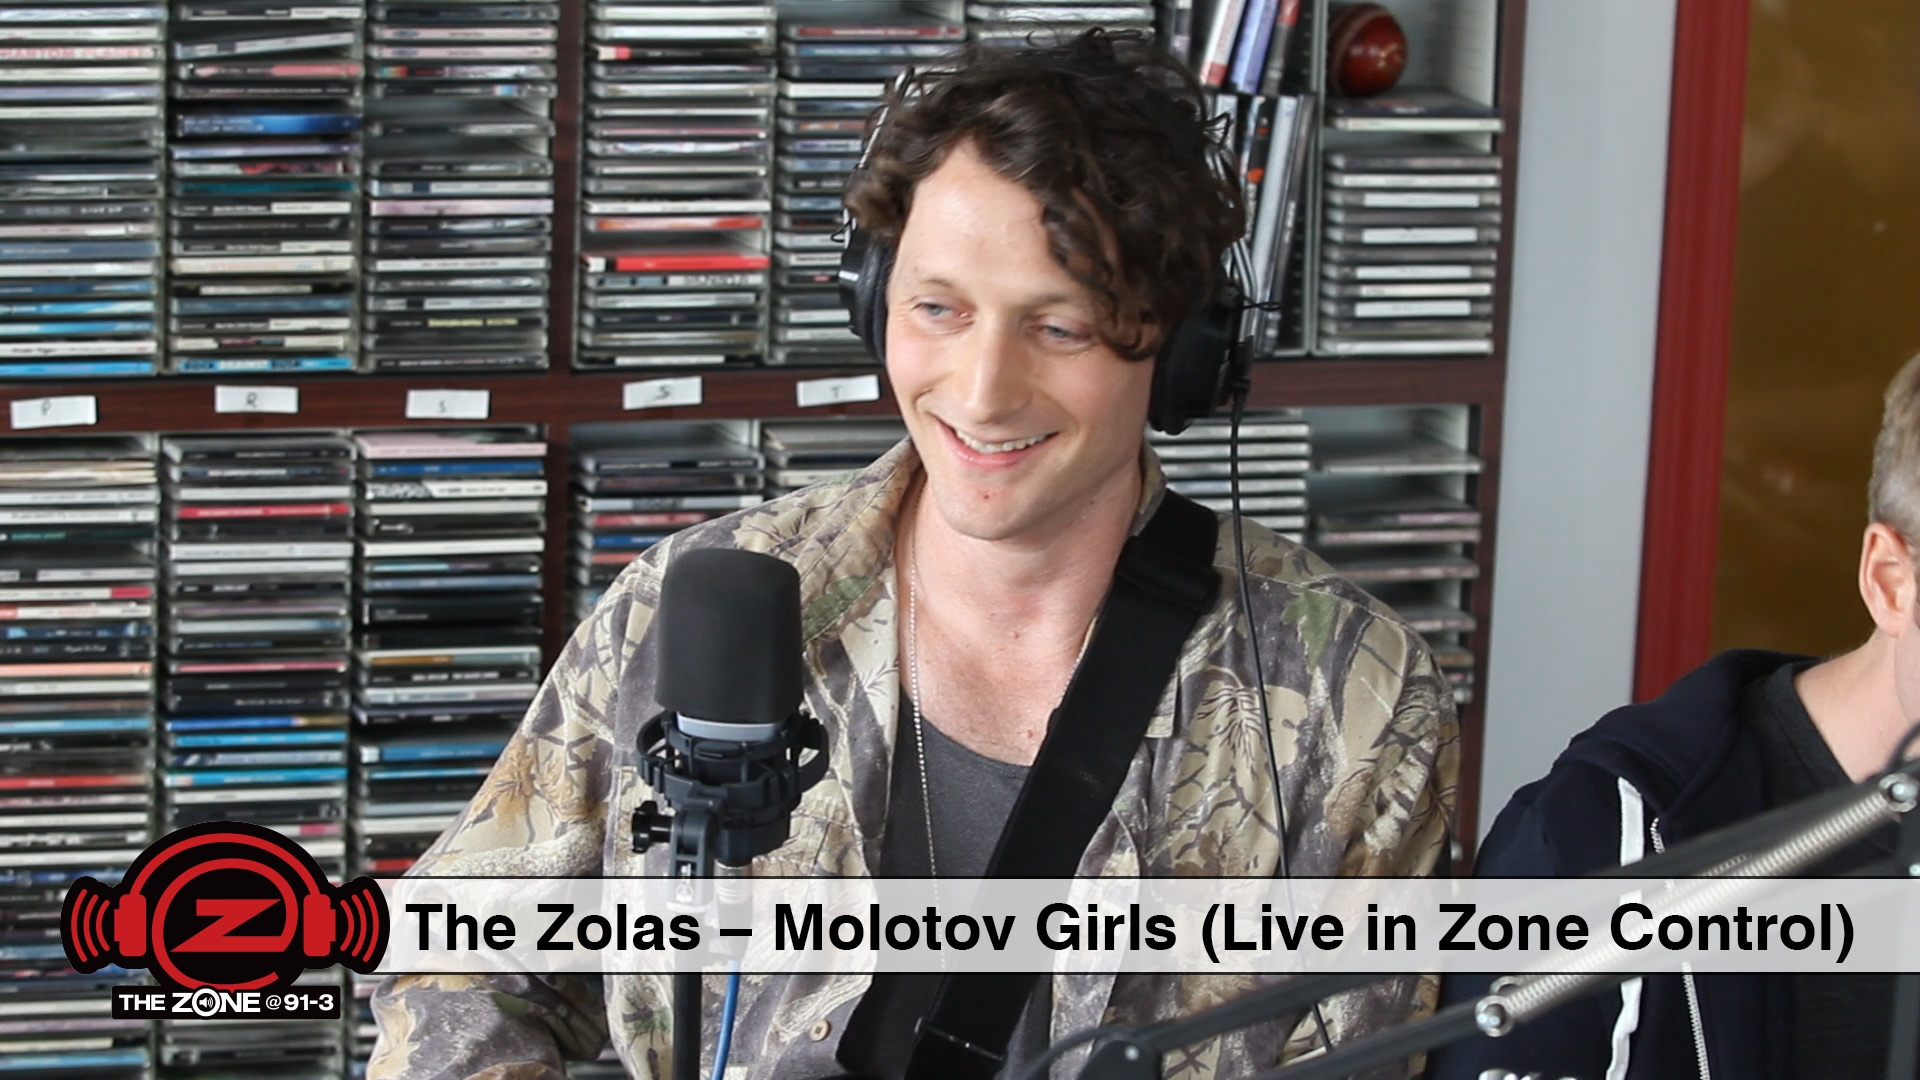 The Zolas - Molotov Girls (Live in Zone Control)